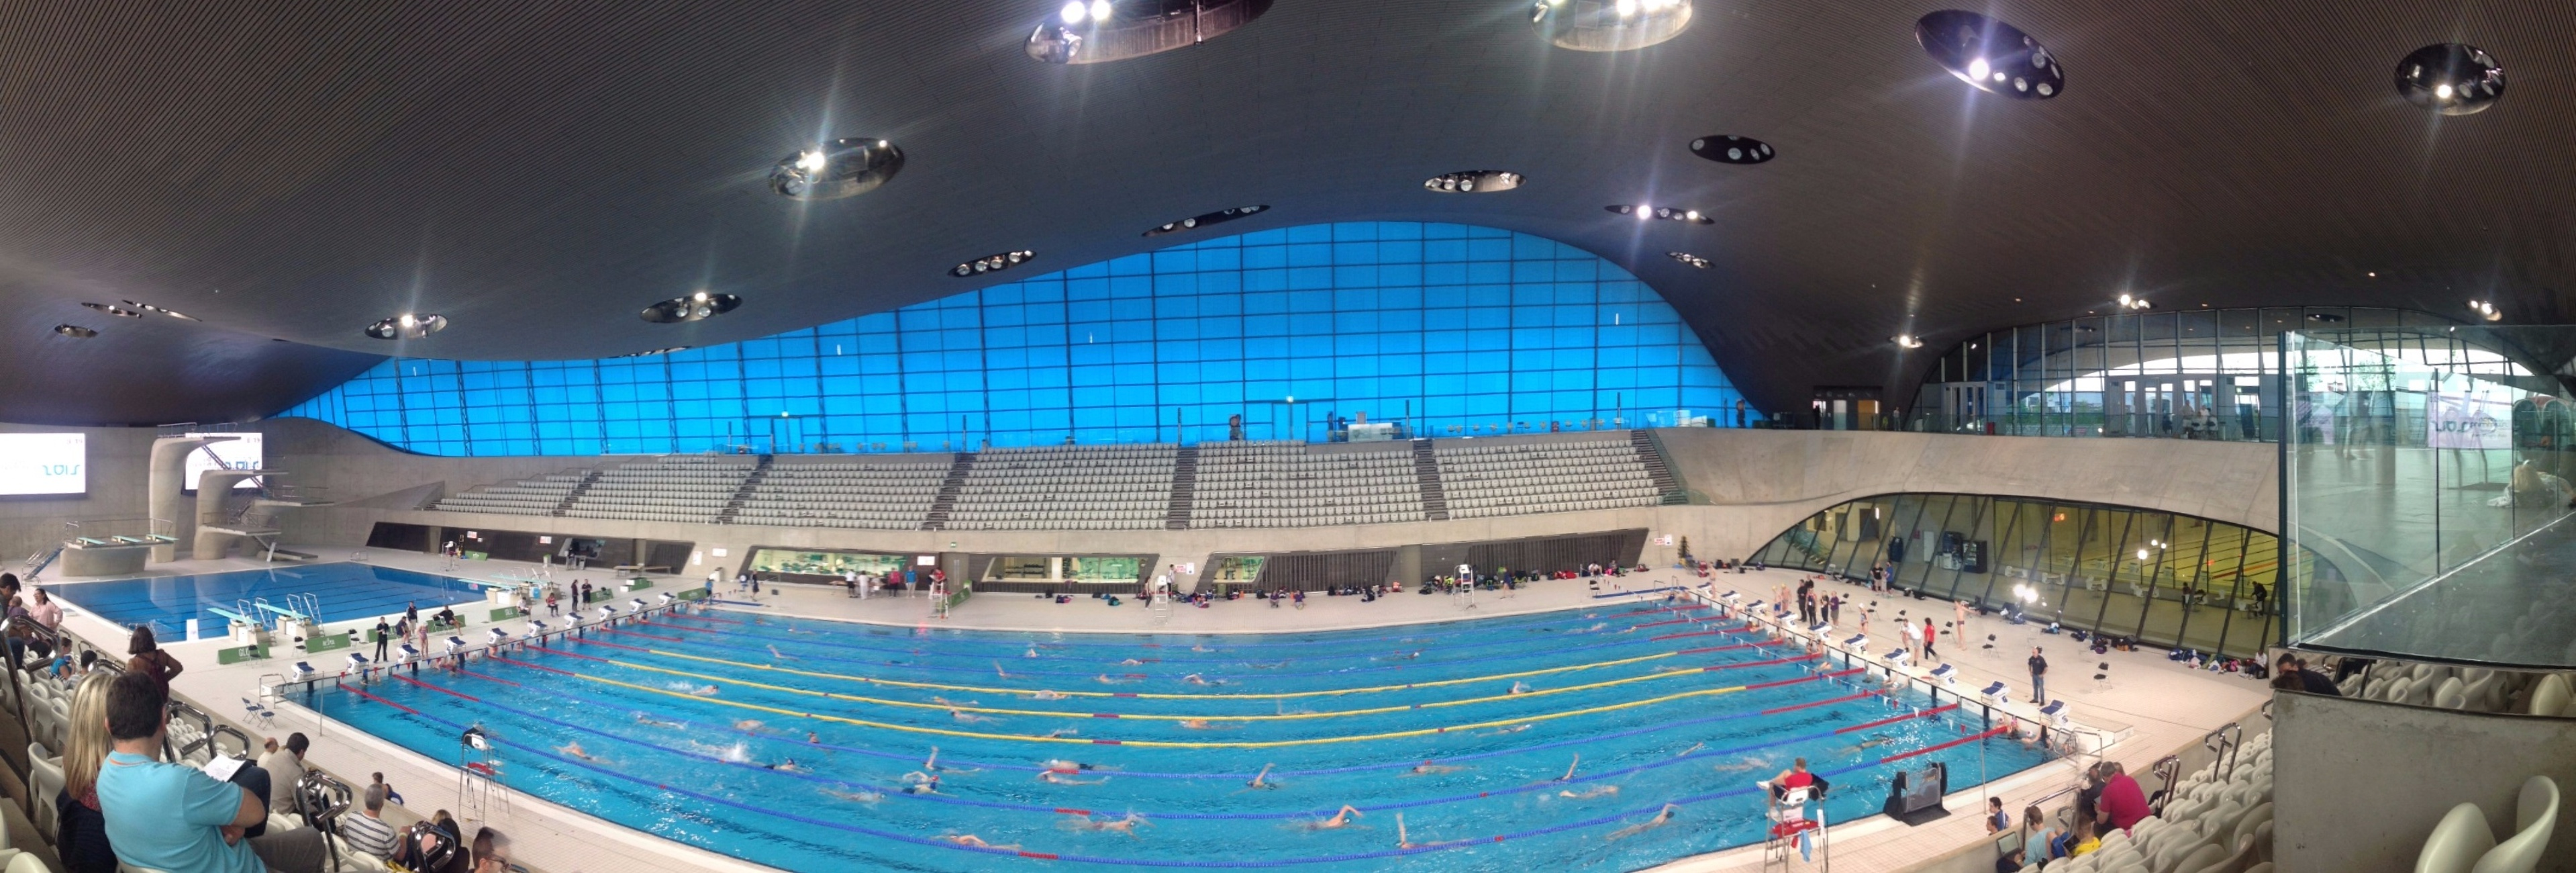 London aquatic centre panorama (2).JPG